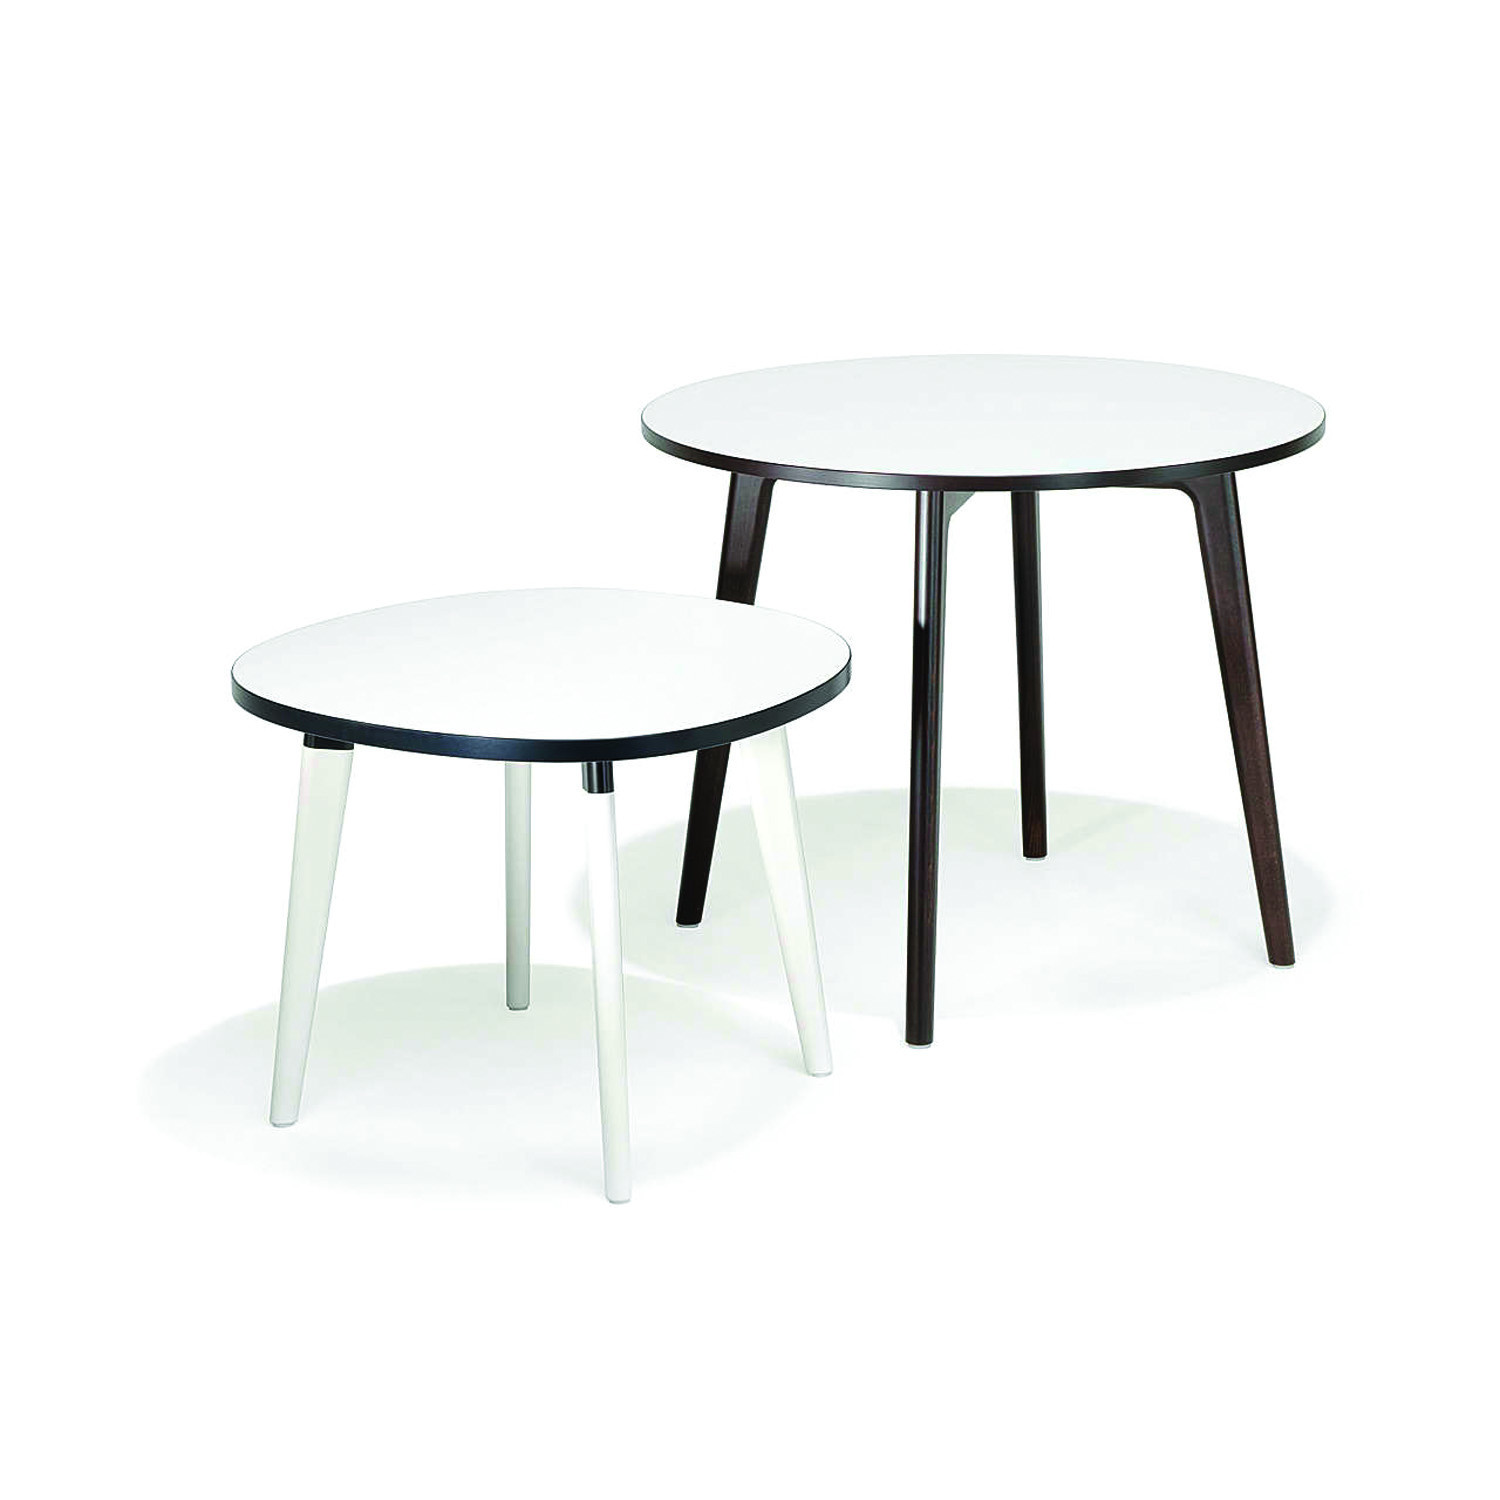 6100 San_Siro Tables are available in three heights